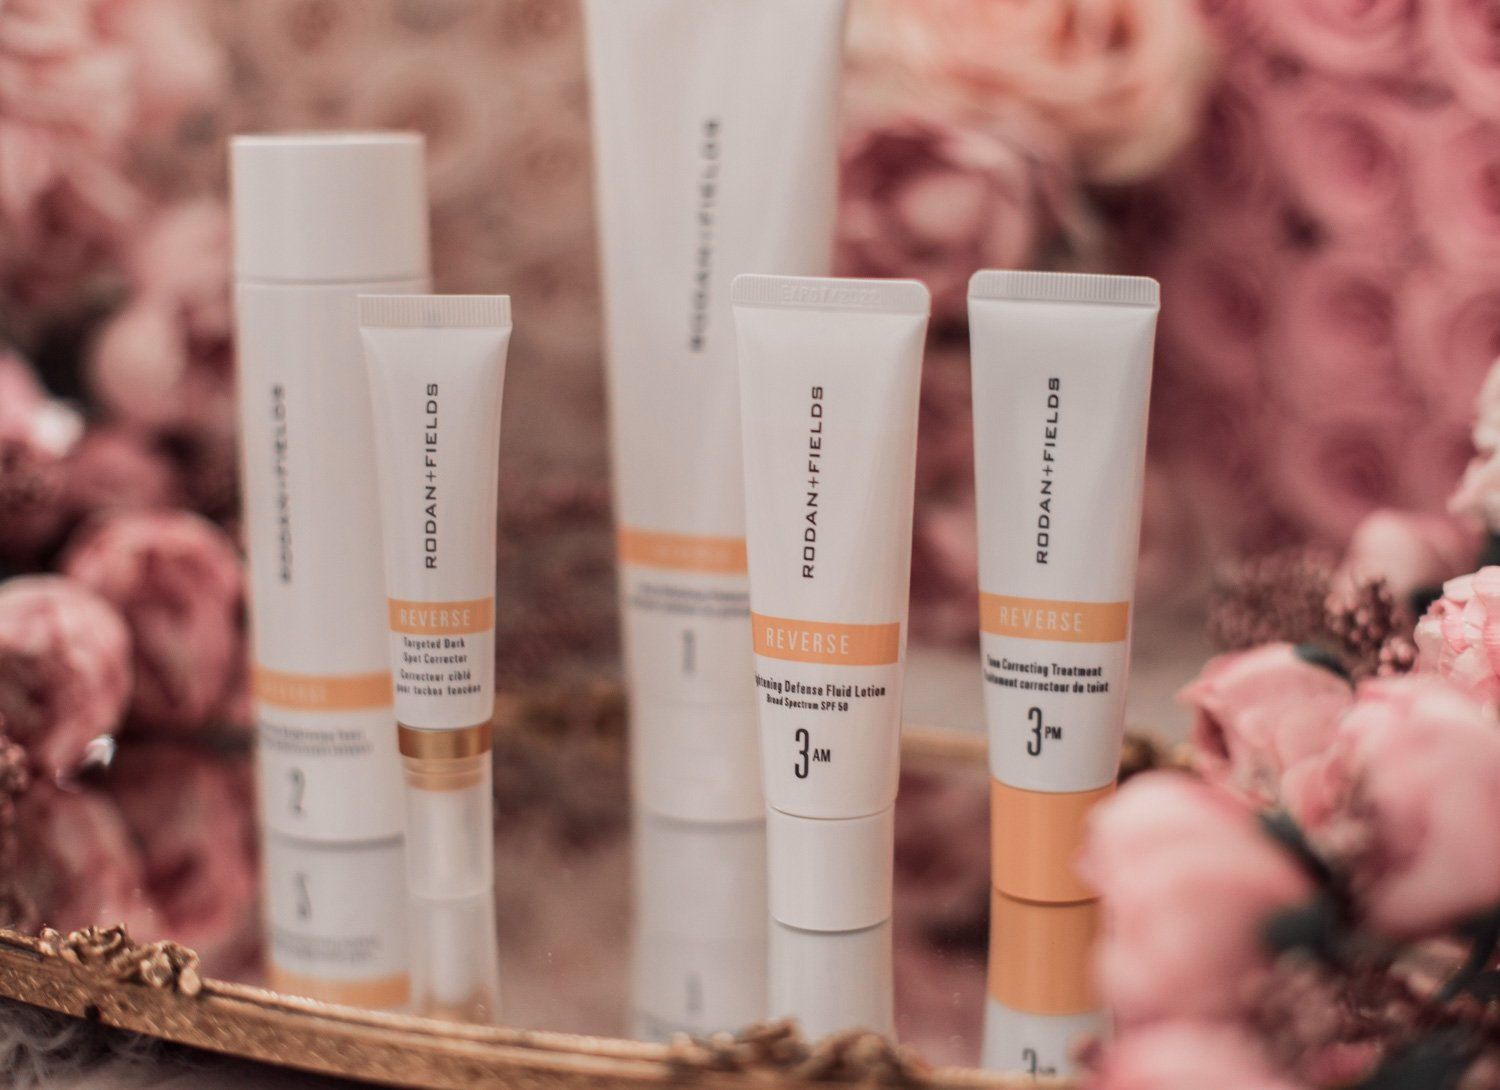 Fashion and beauty blogger Elizabeth Hugen of Lizzie in Lace shares her skincare routine for dark spot removal featuring the Rodan + Fields REVERSE Regimen